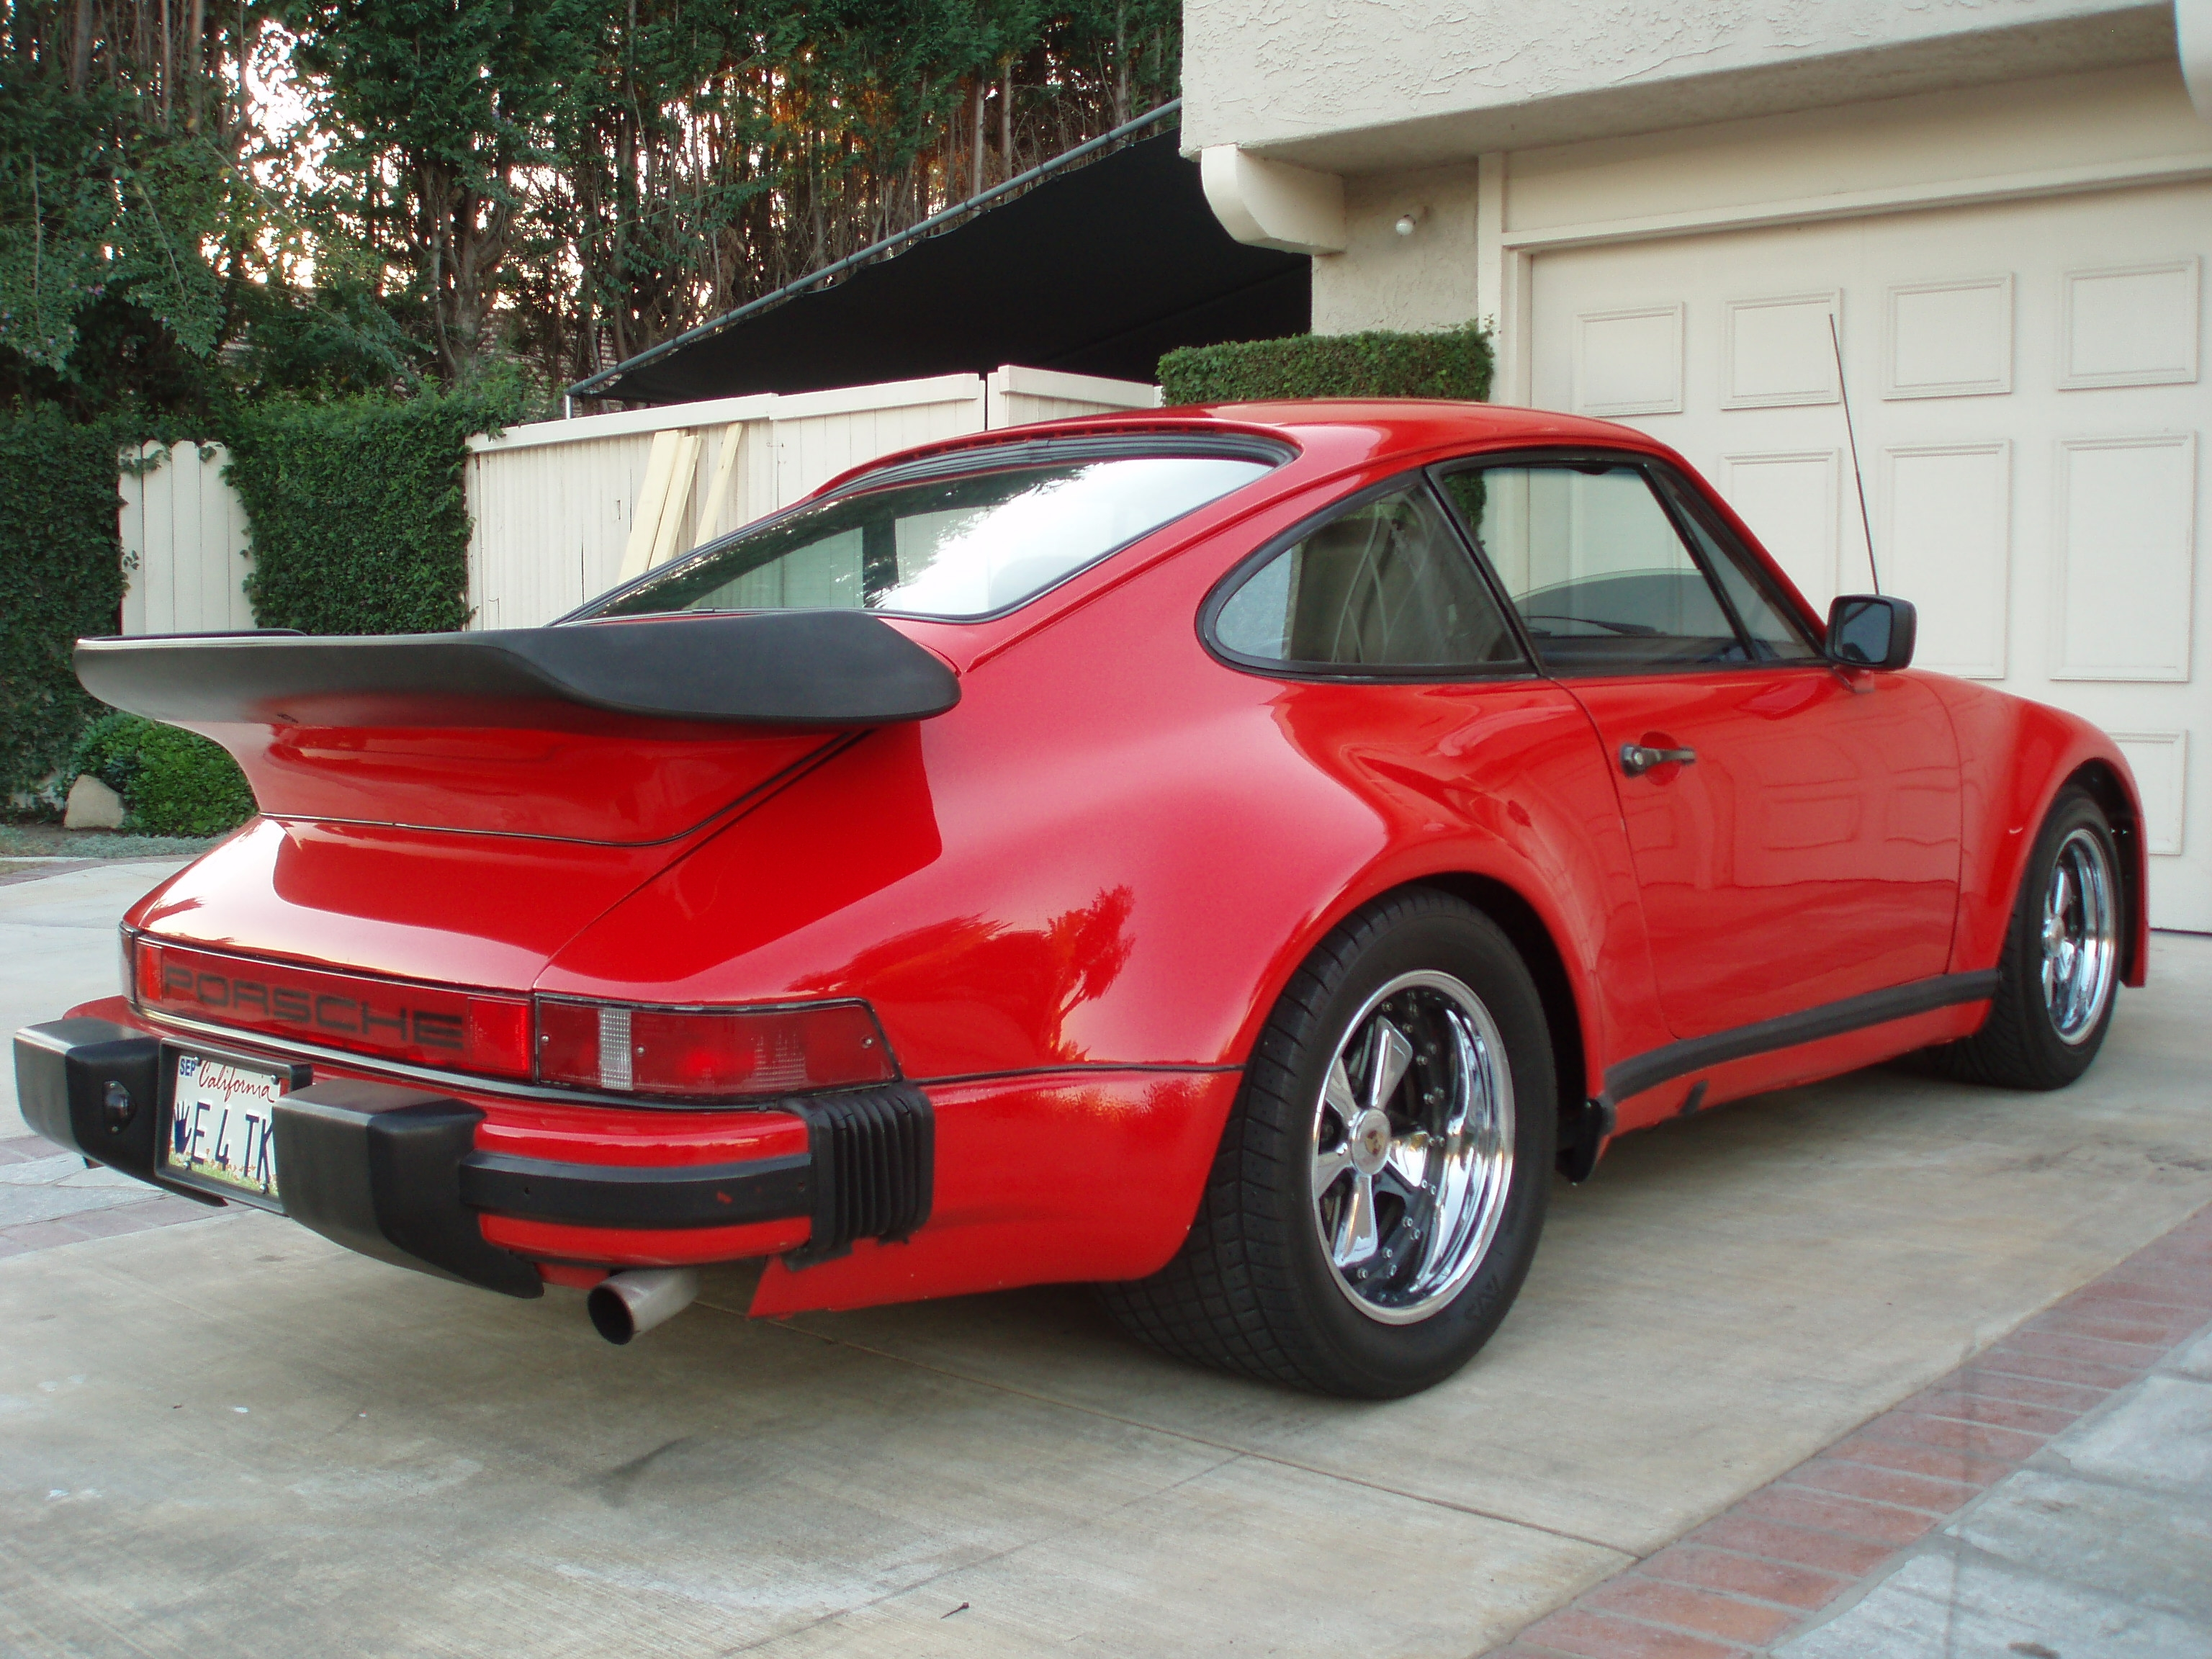 stevebuchanan 1975 porsche 911 specs photos modification. Black Bedroom Furniture Sets. Home Design Ideas